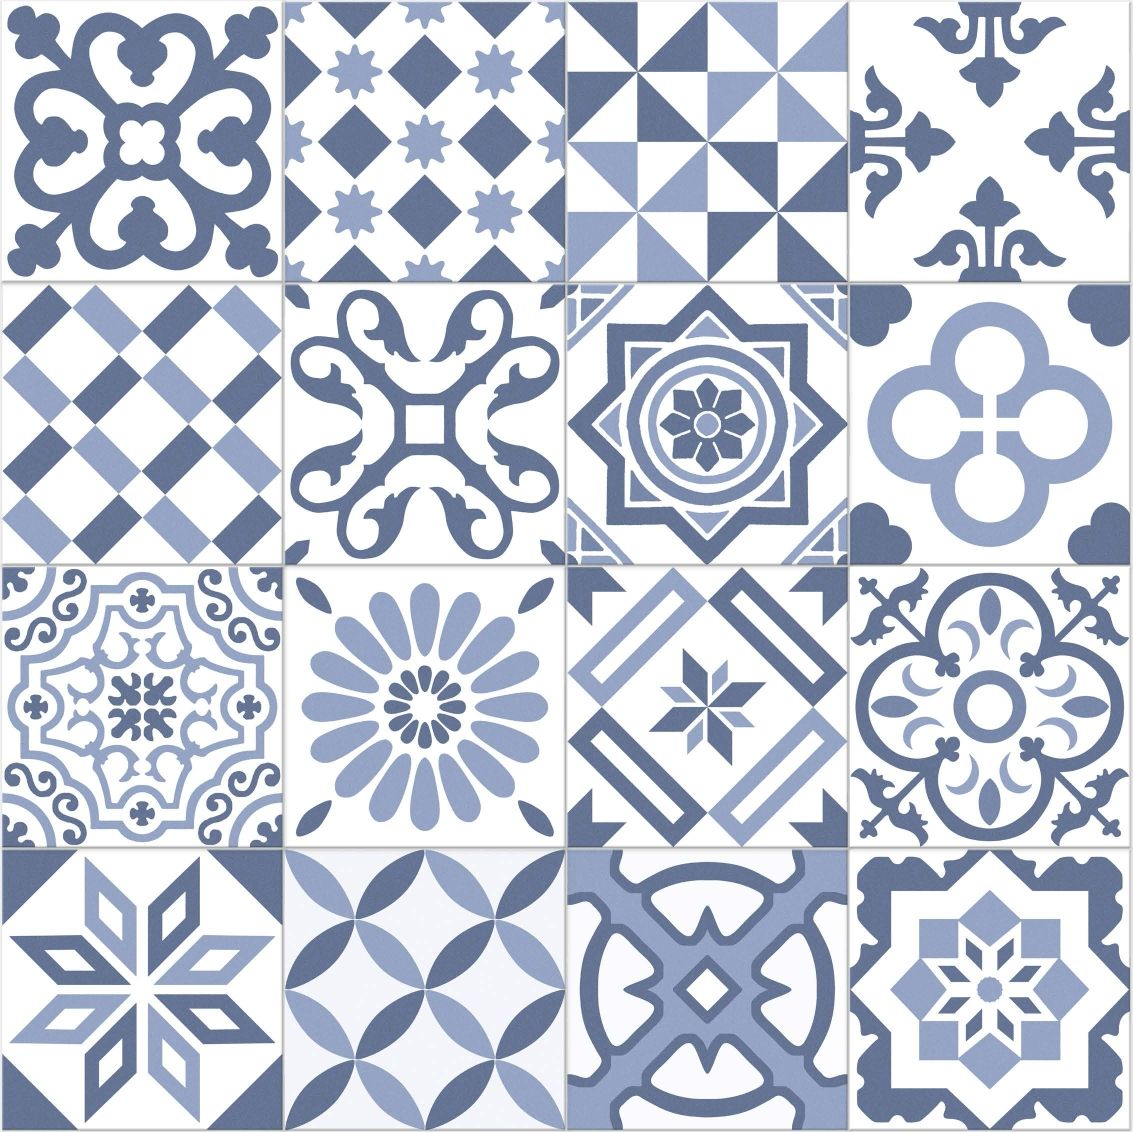 Carrelage imitation ciment bleu et blanc mix 20x20 cm for Carrelage blanc brillant 20x20